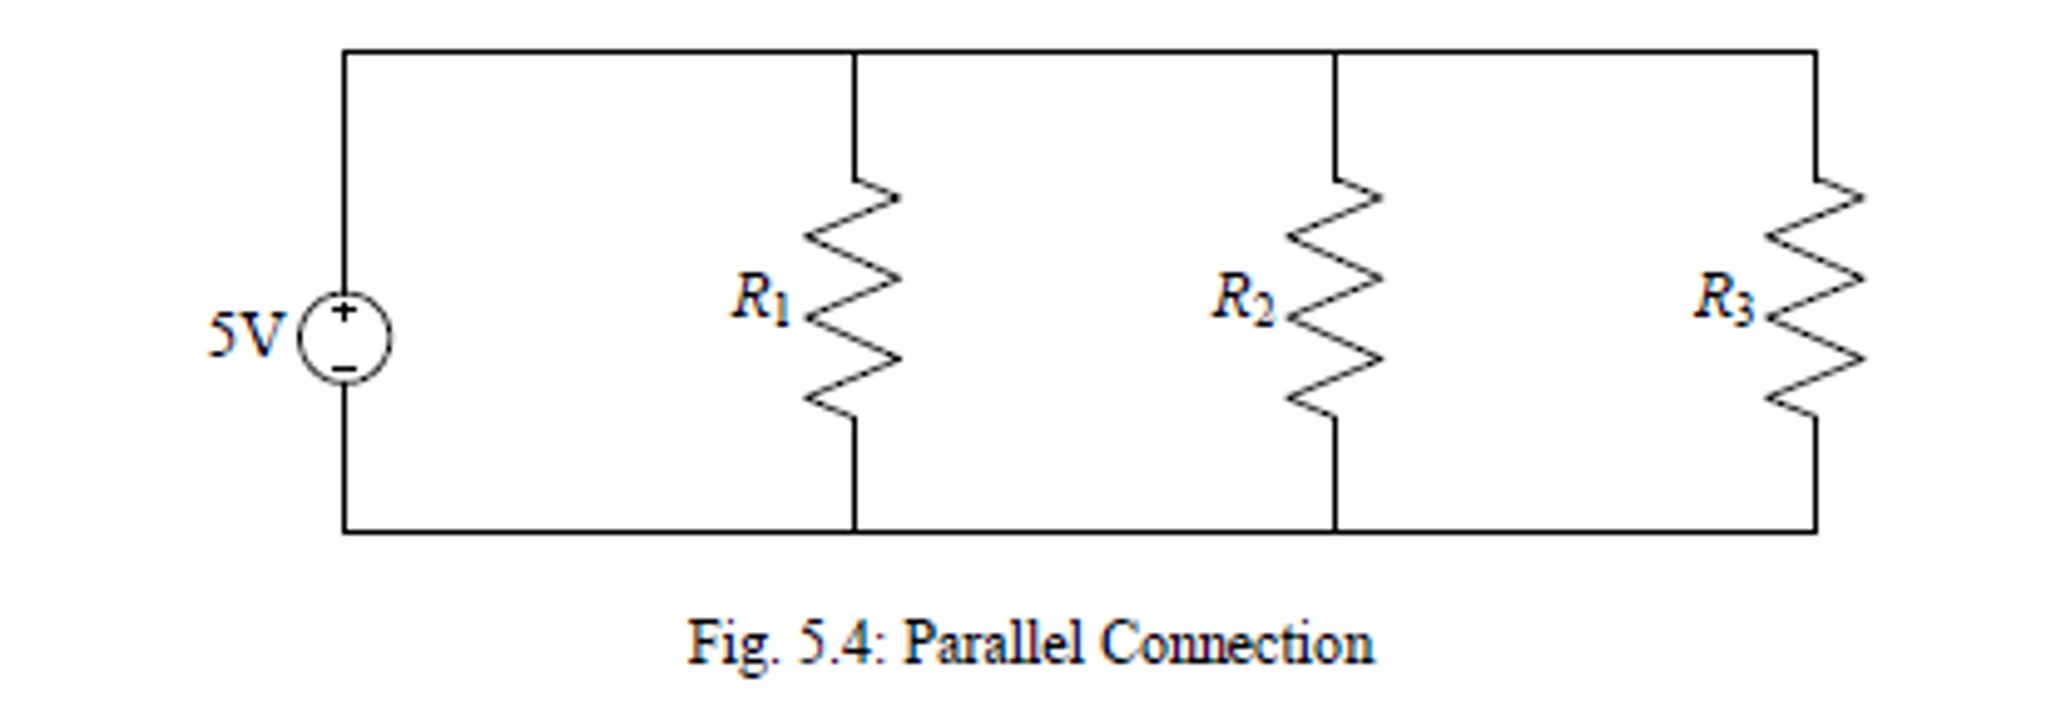 Solved On Ni Elvis Prototyping Board Makes Connections As Electronic Circuit Diagrams 5v Power Supply E Repeat Part C For The Given In Fig 55